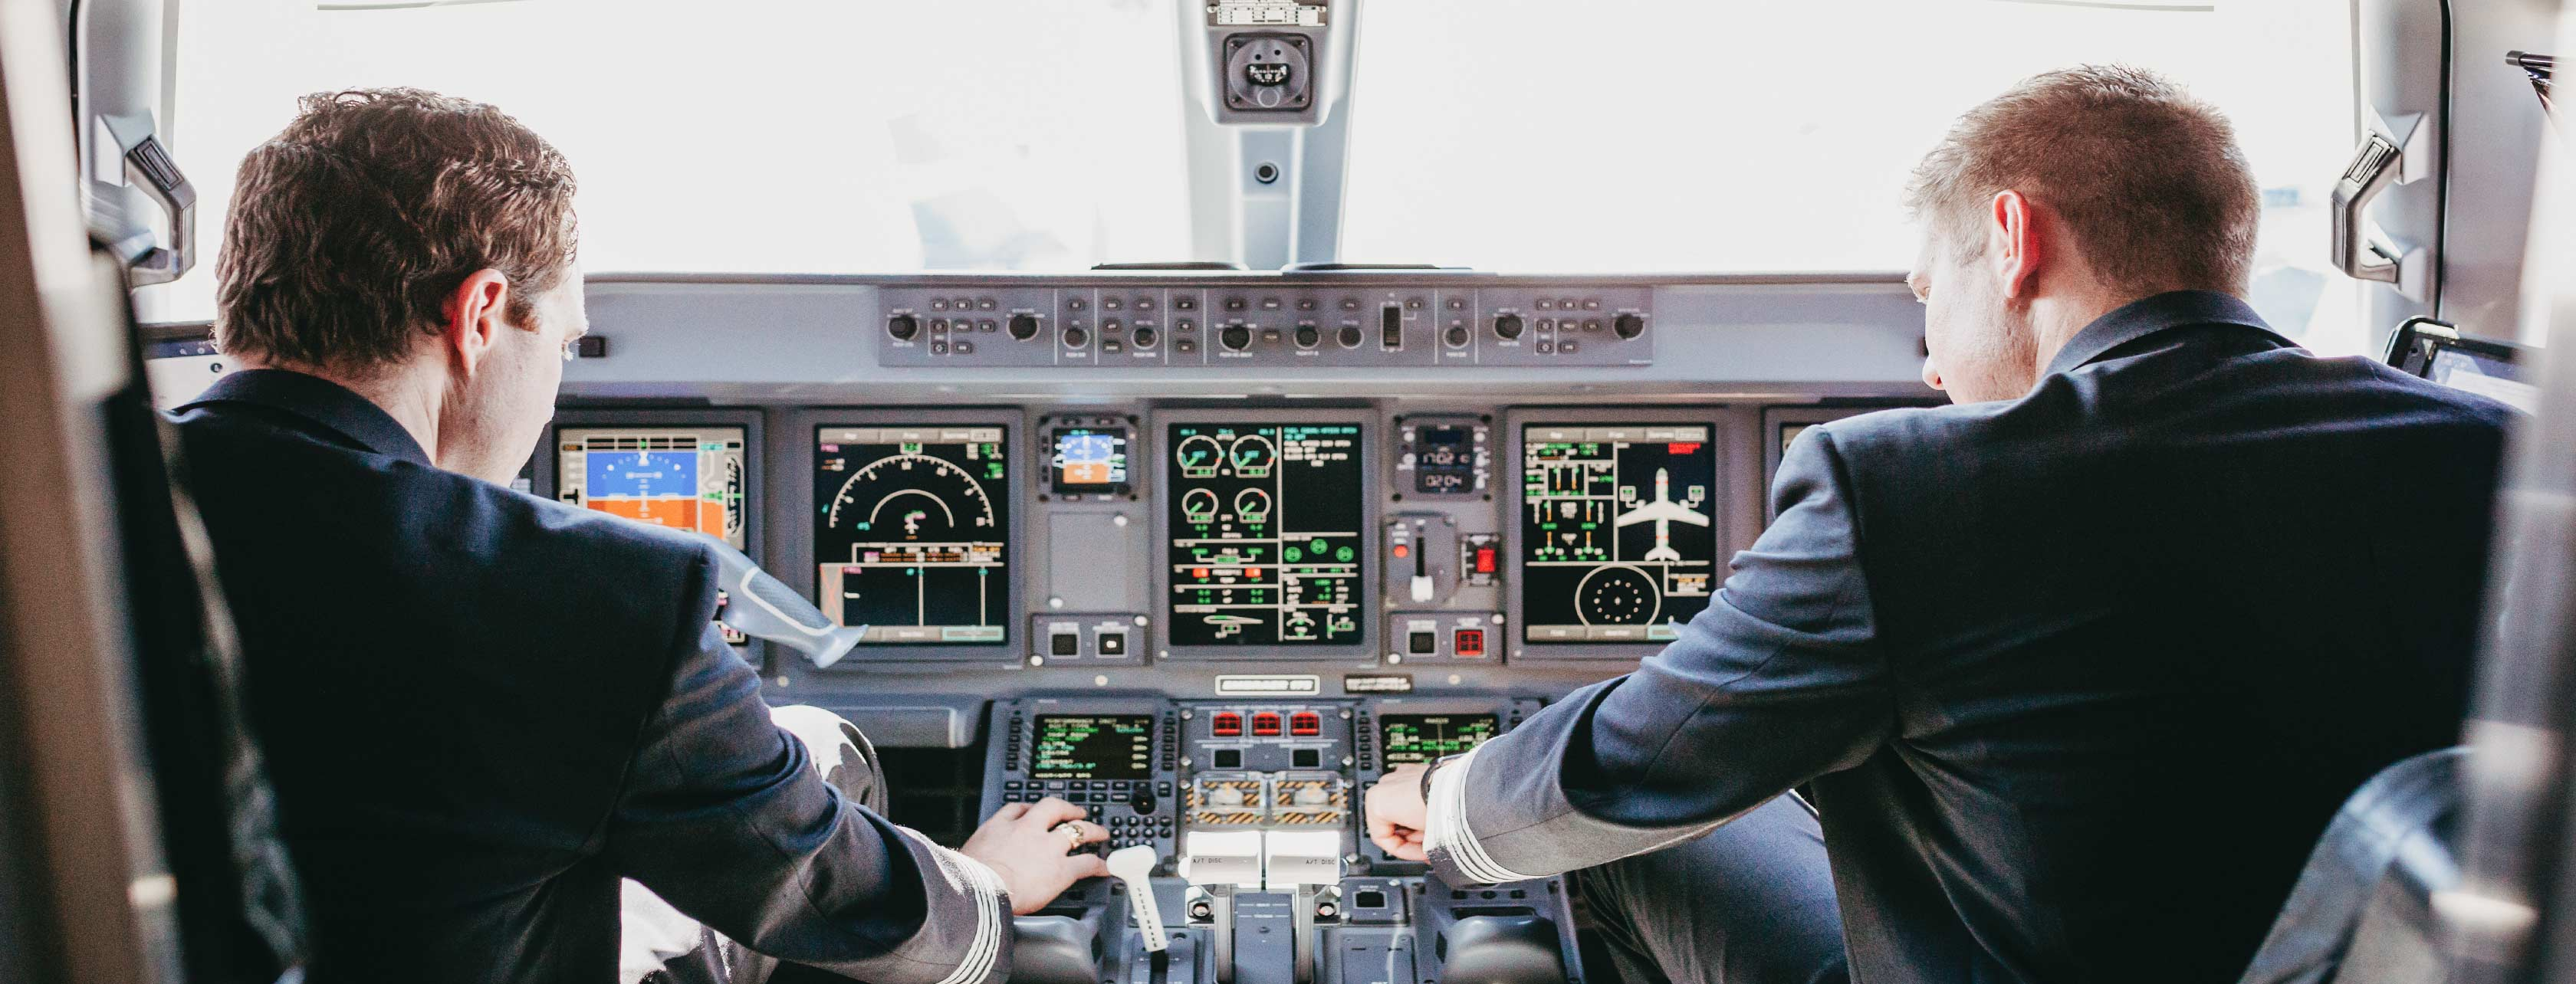 Envoy Air Pilots in Cockpit of ERJ